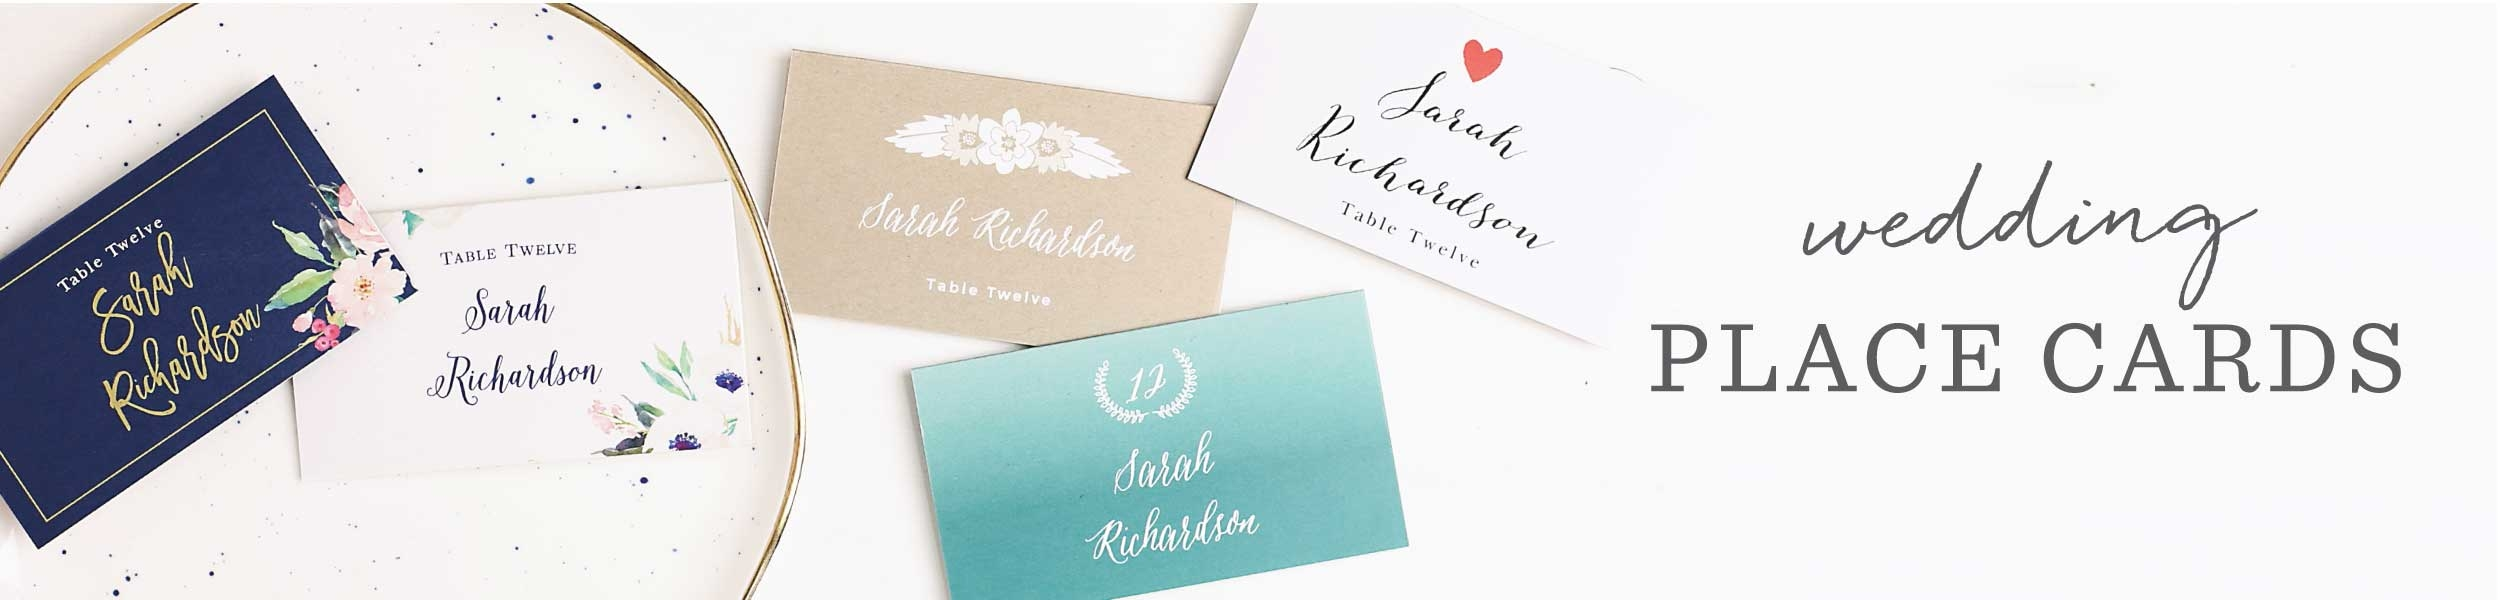 place cards - Wedding Place Cards